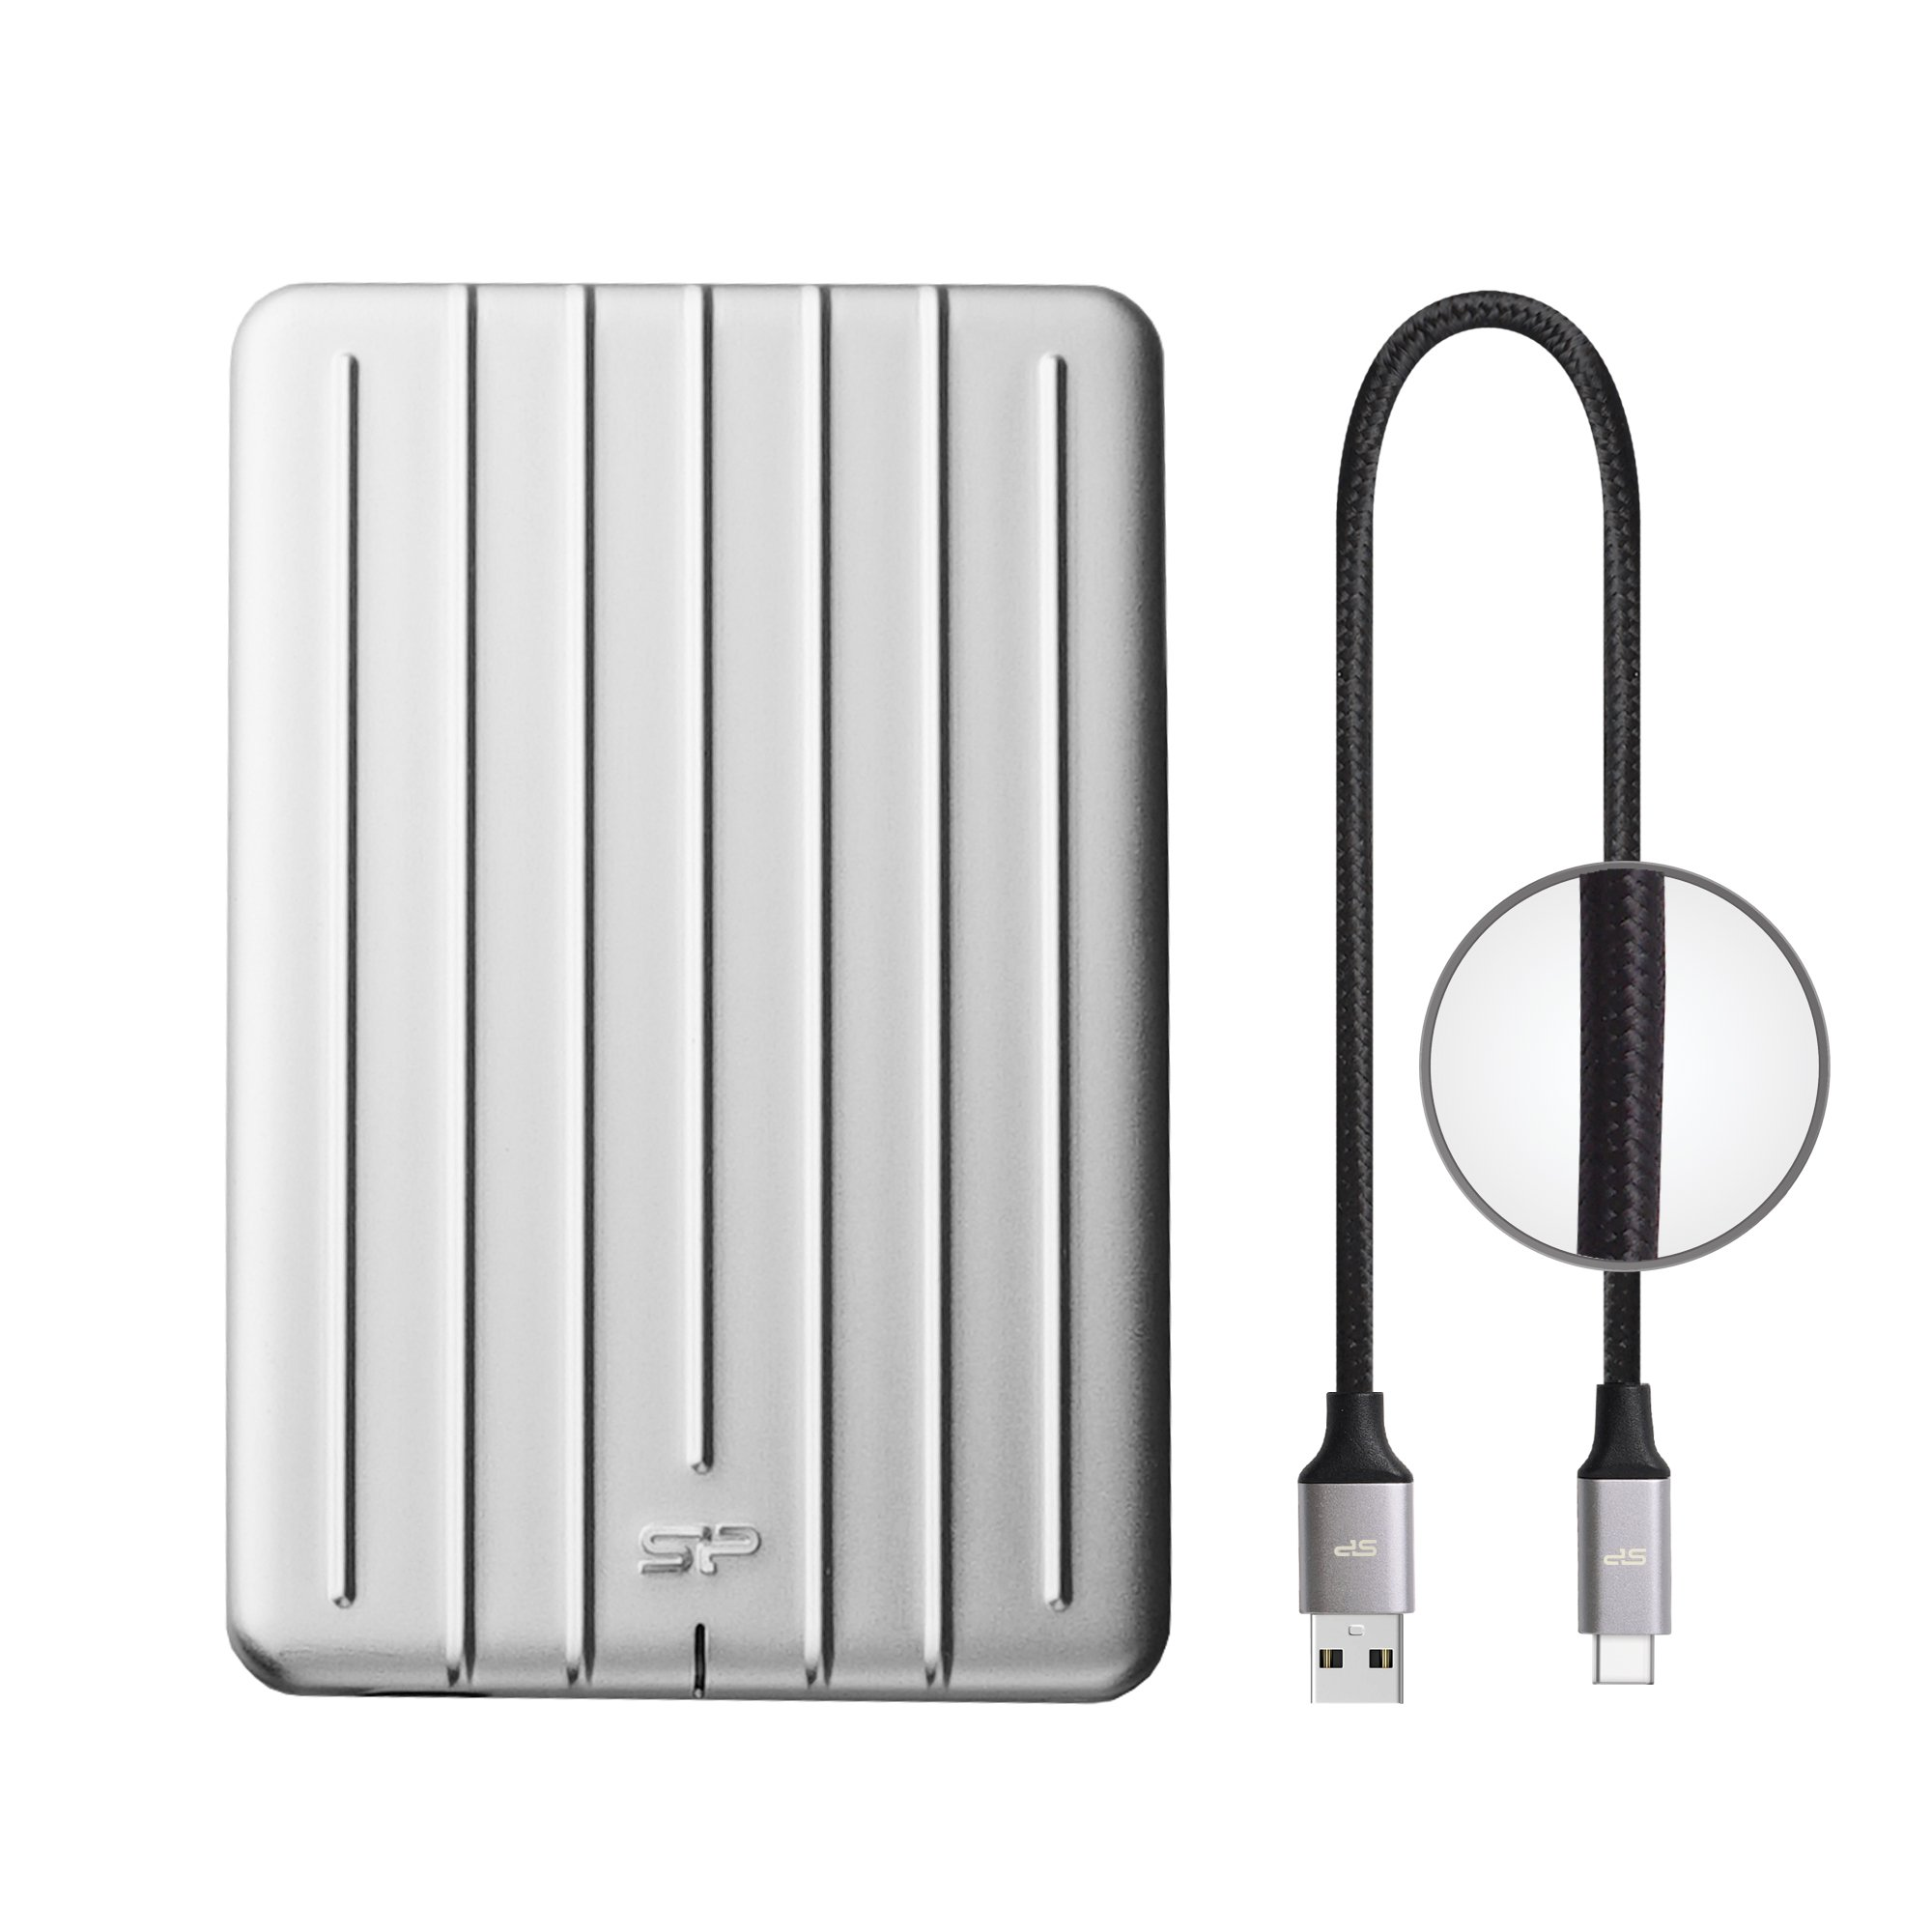 Silicon Power SU010TBPHDA75S3SAE 1TB Ultra Slim Rugged Armor A75 Shockproof USB 3.0 (USB 3.1 Gen 1) 2.5'' Portable External Hard Drive, Silver by Silicon Power (Image #1)